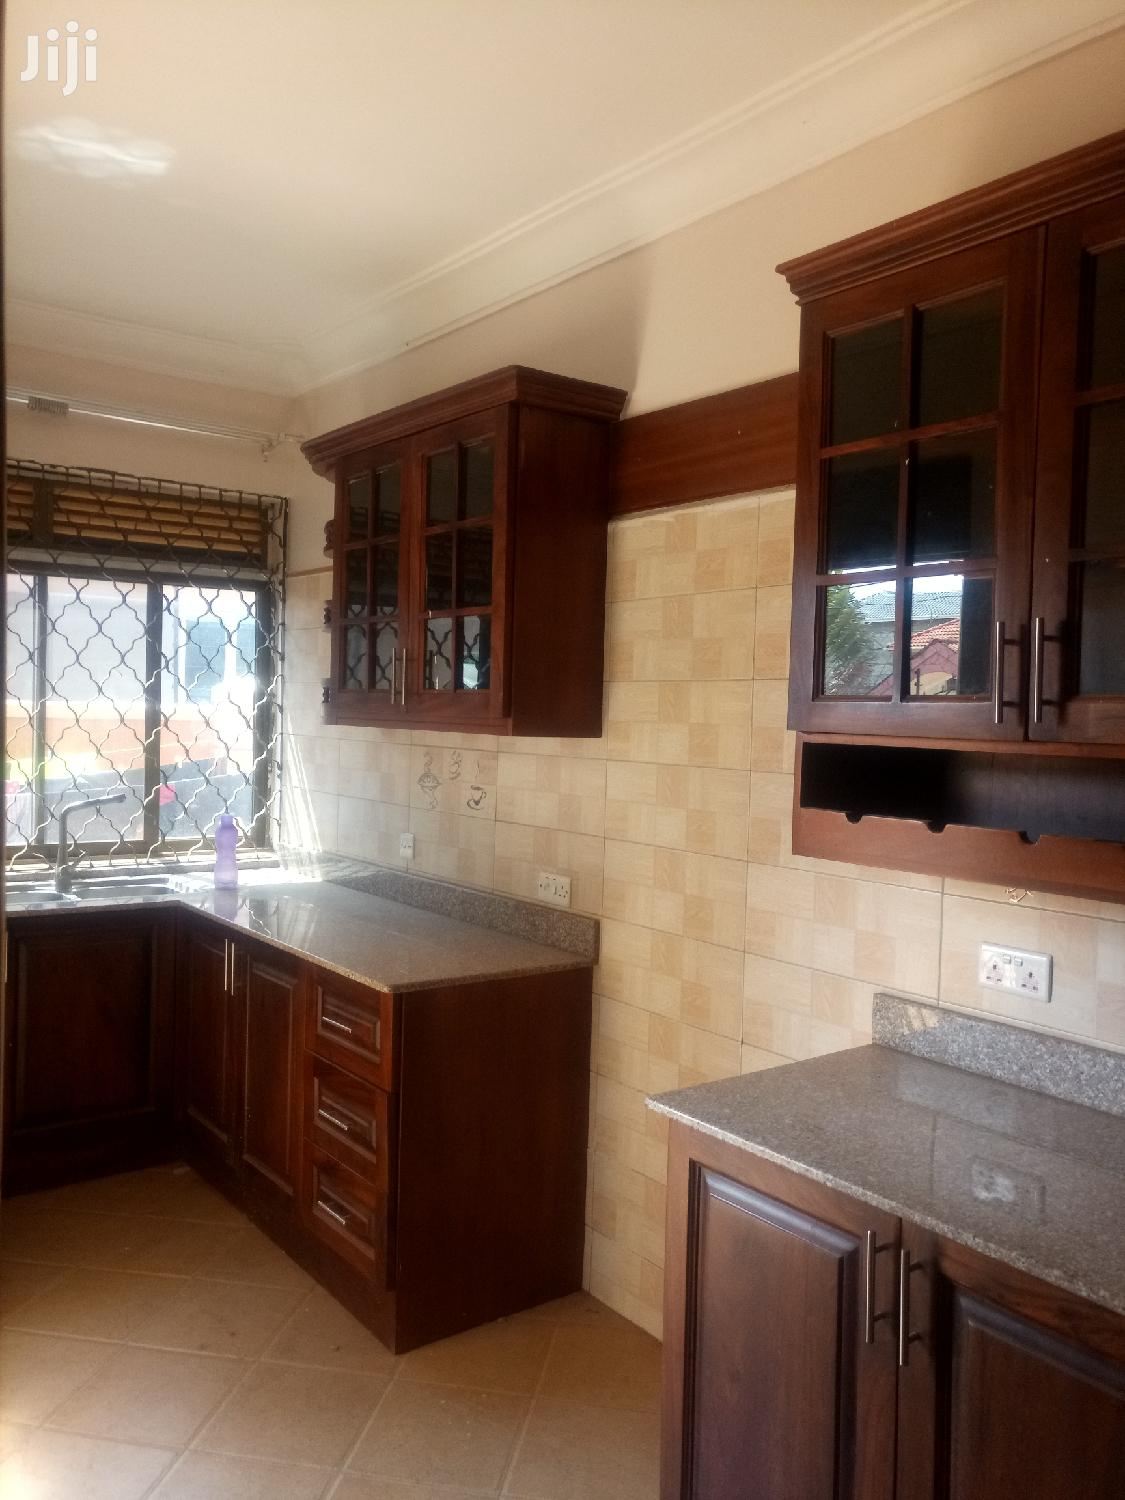 Kireka-Namugongo Rd Three Bedrooms for Rent | Houses & Apartments For Rent for sale in Kampala, Central Region, Uganda